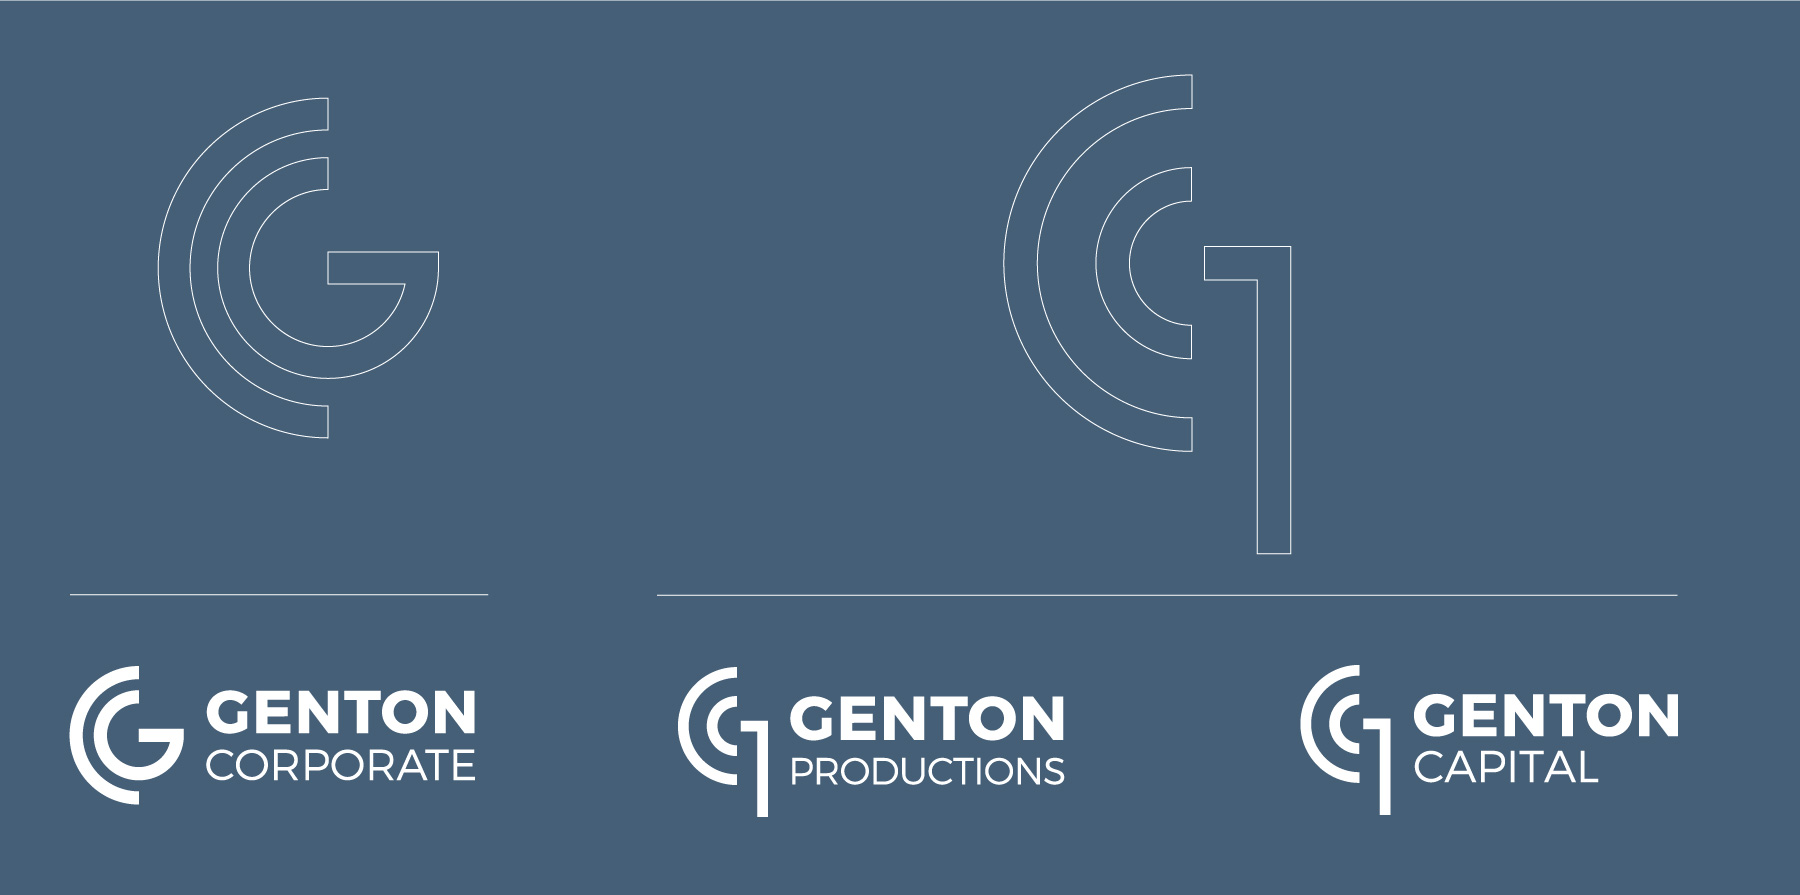 Genton Corporate étude logo